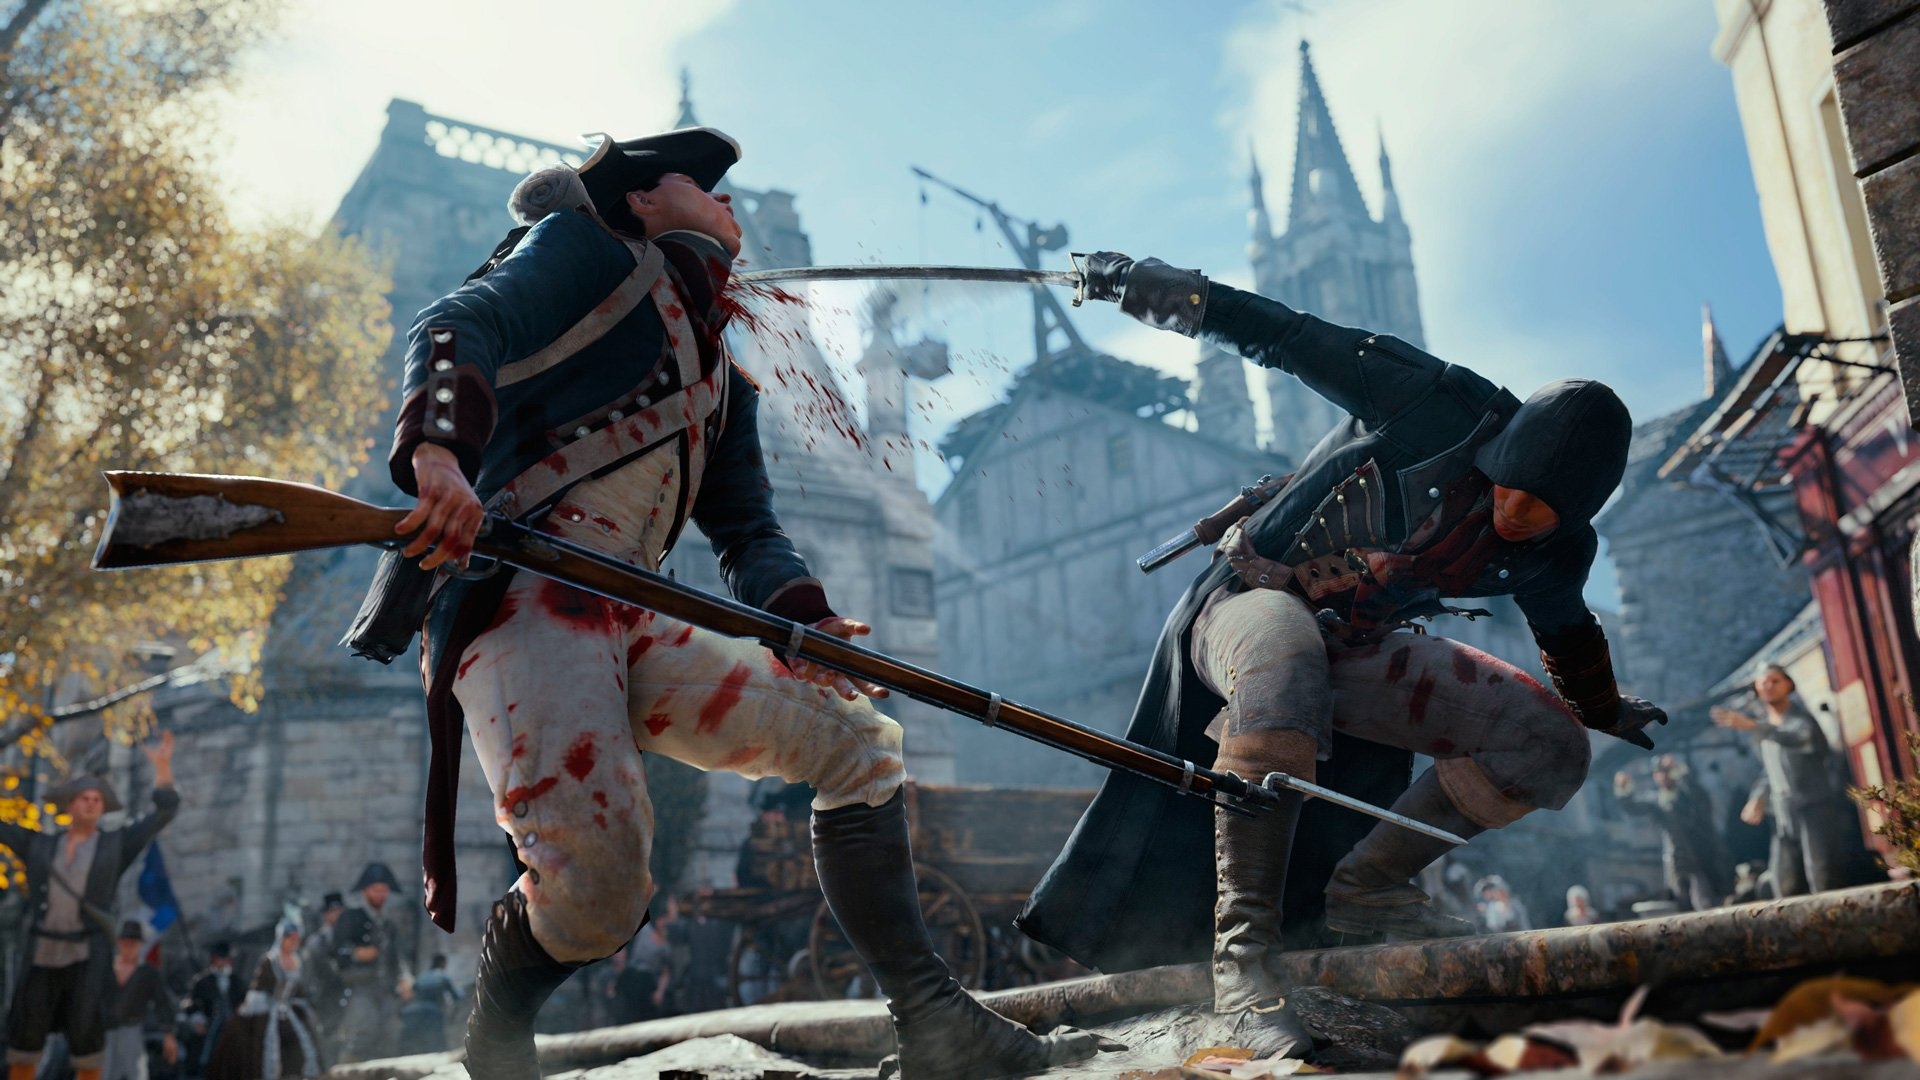 Скриншоты Assassin's Creed: Unity в 4K - Изображение 2